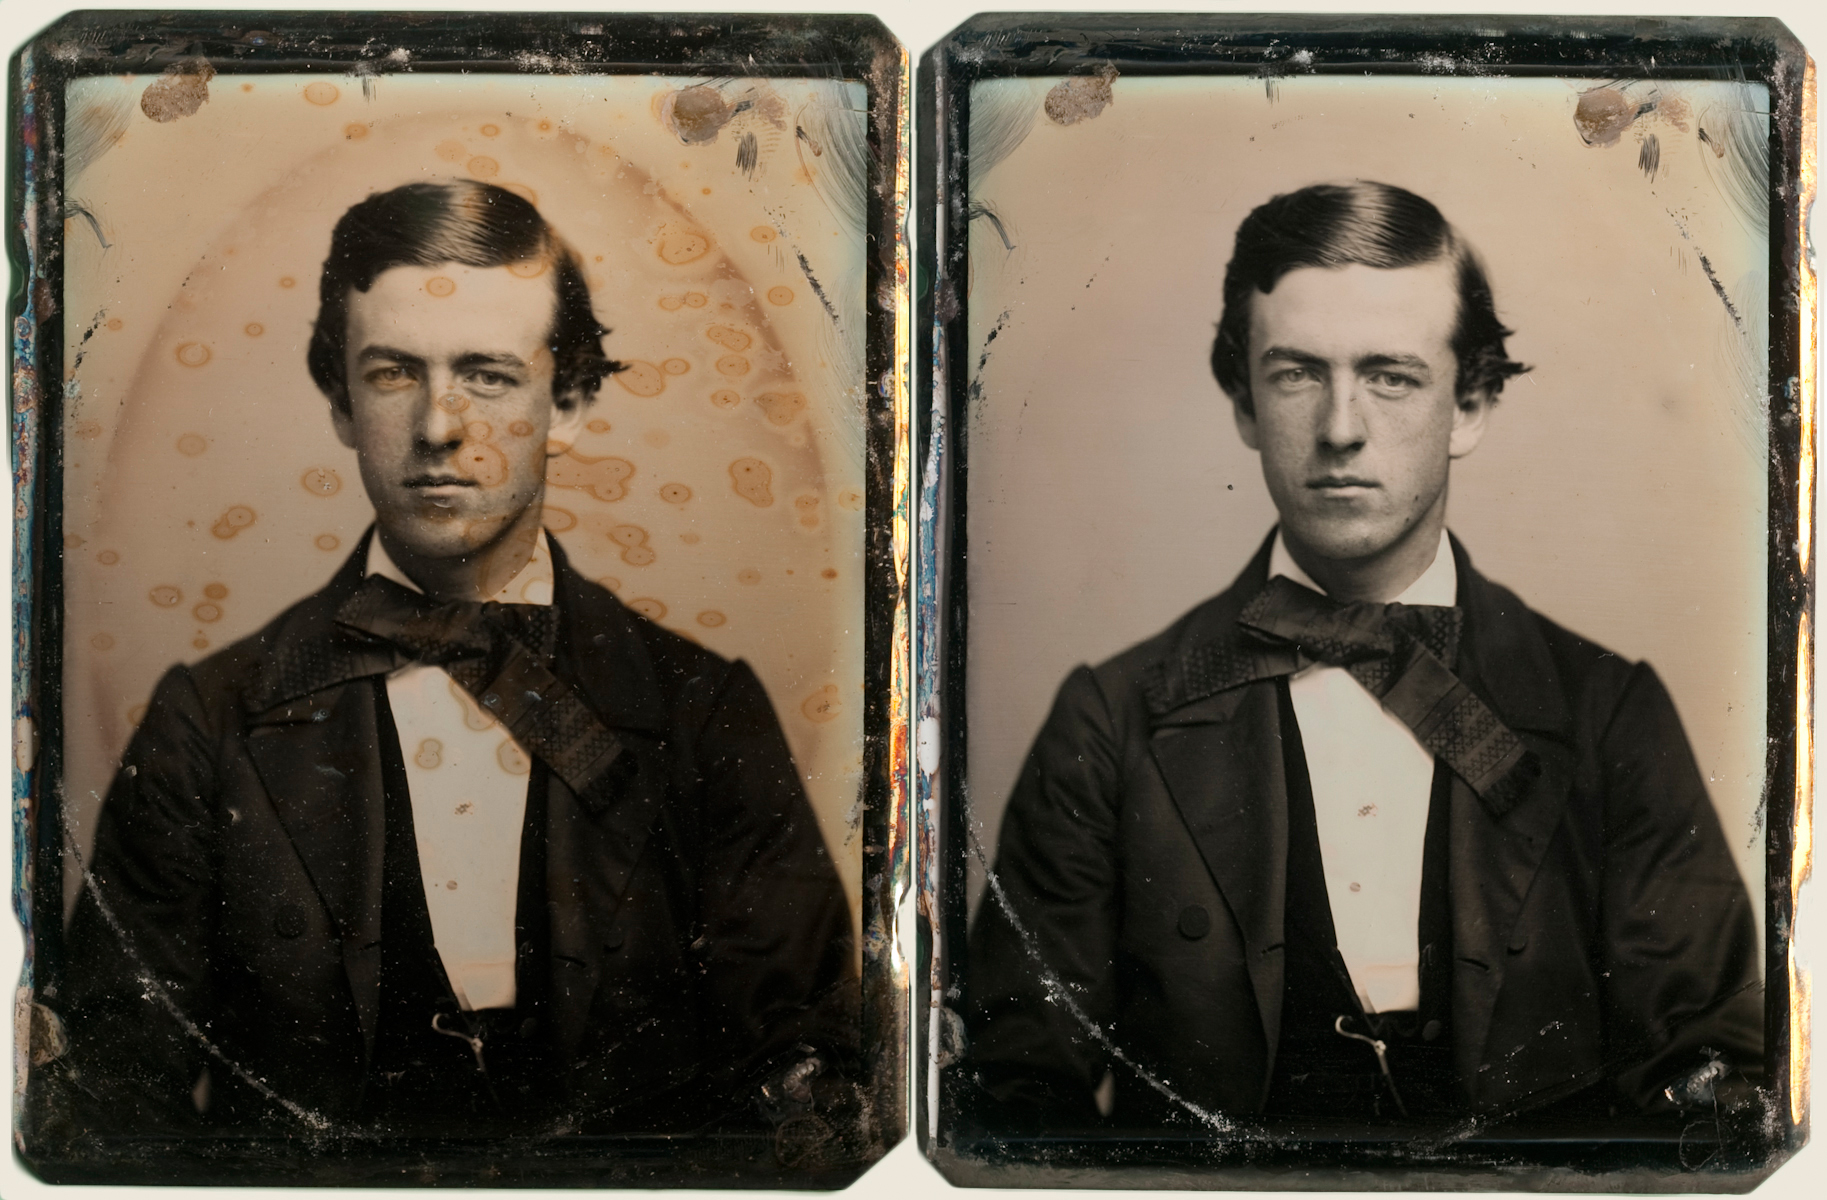 - Quarter plate daguerreotype with thiourea measles -before and after electro-cleaning treatment